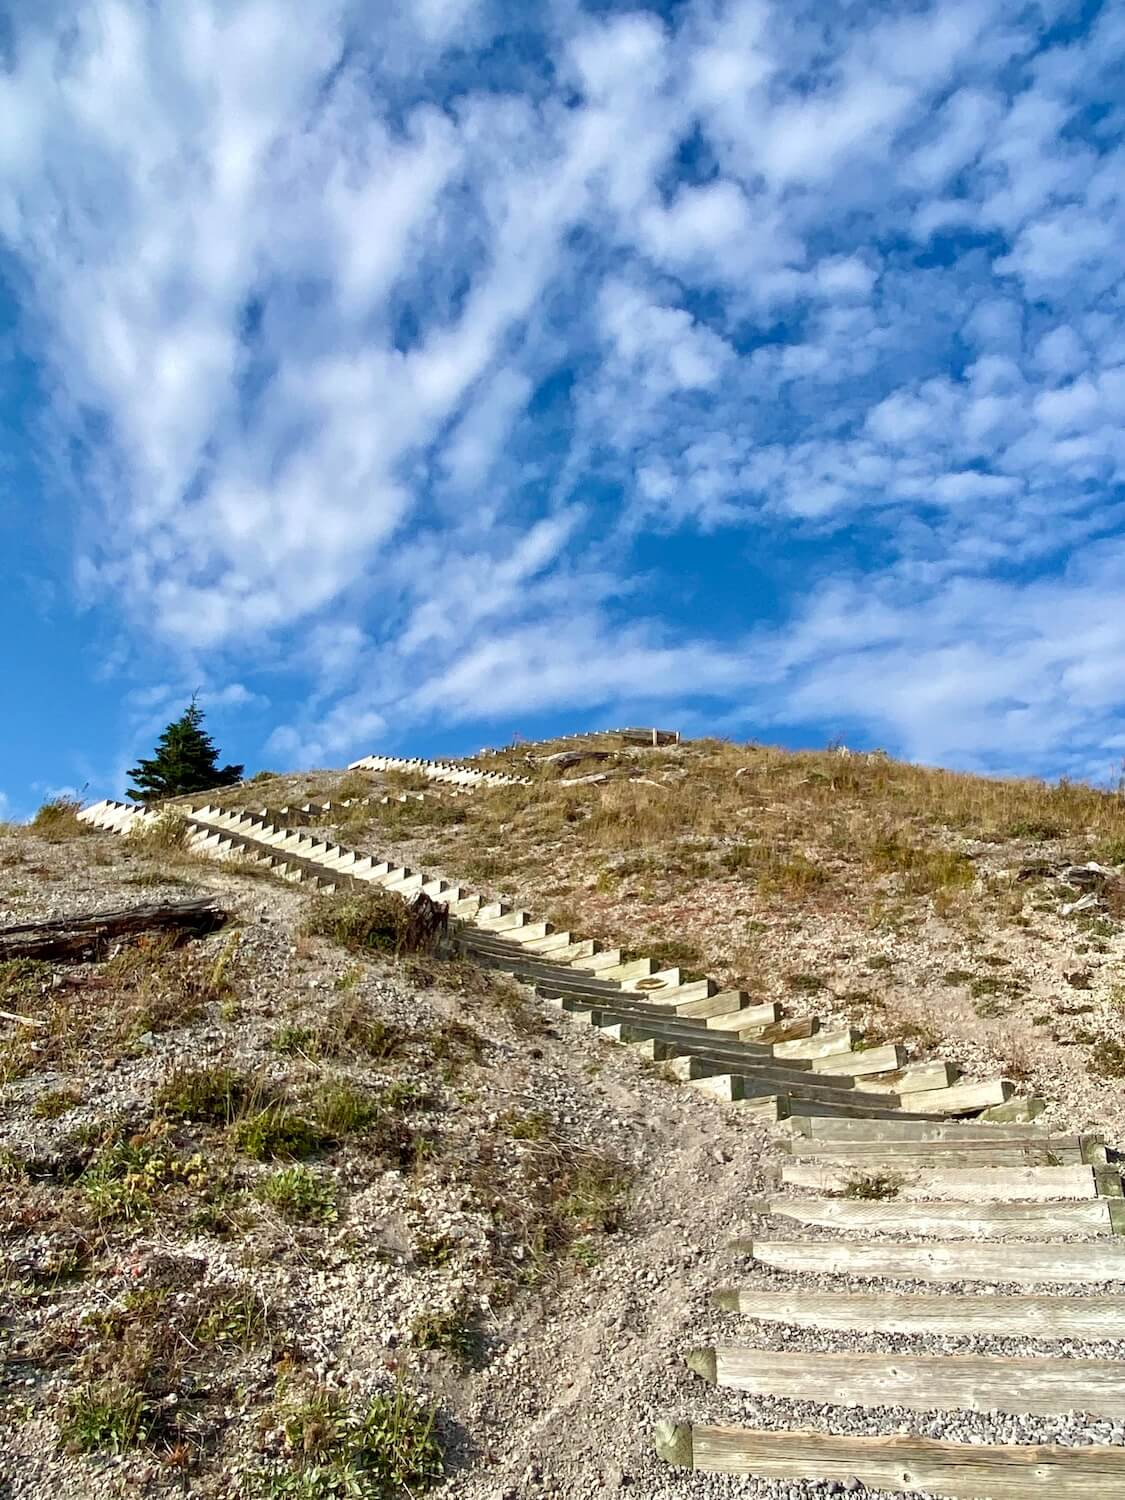 A stairway works up to the top of an ash covered hill on Mount St. Helens.  The sky is bright blue with white fluffy clouds and a small fir tree at the top.